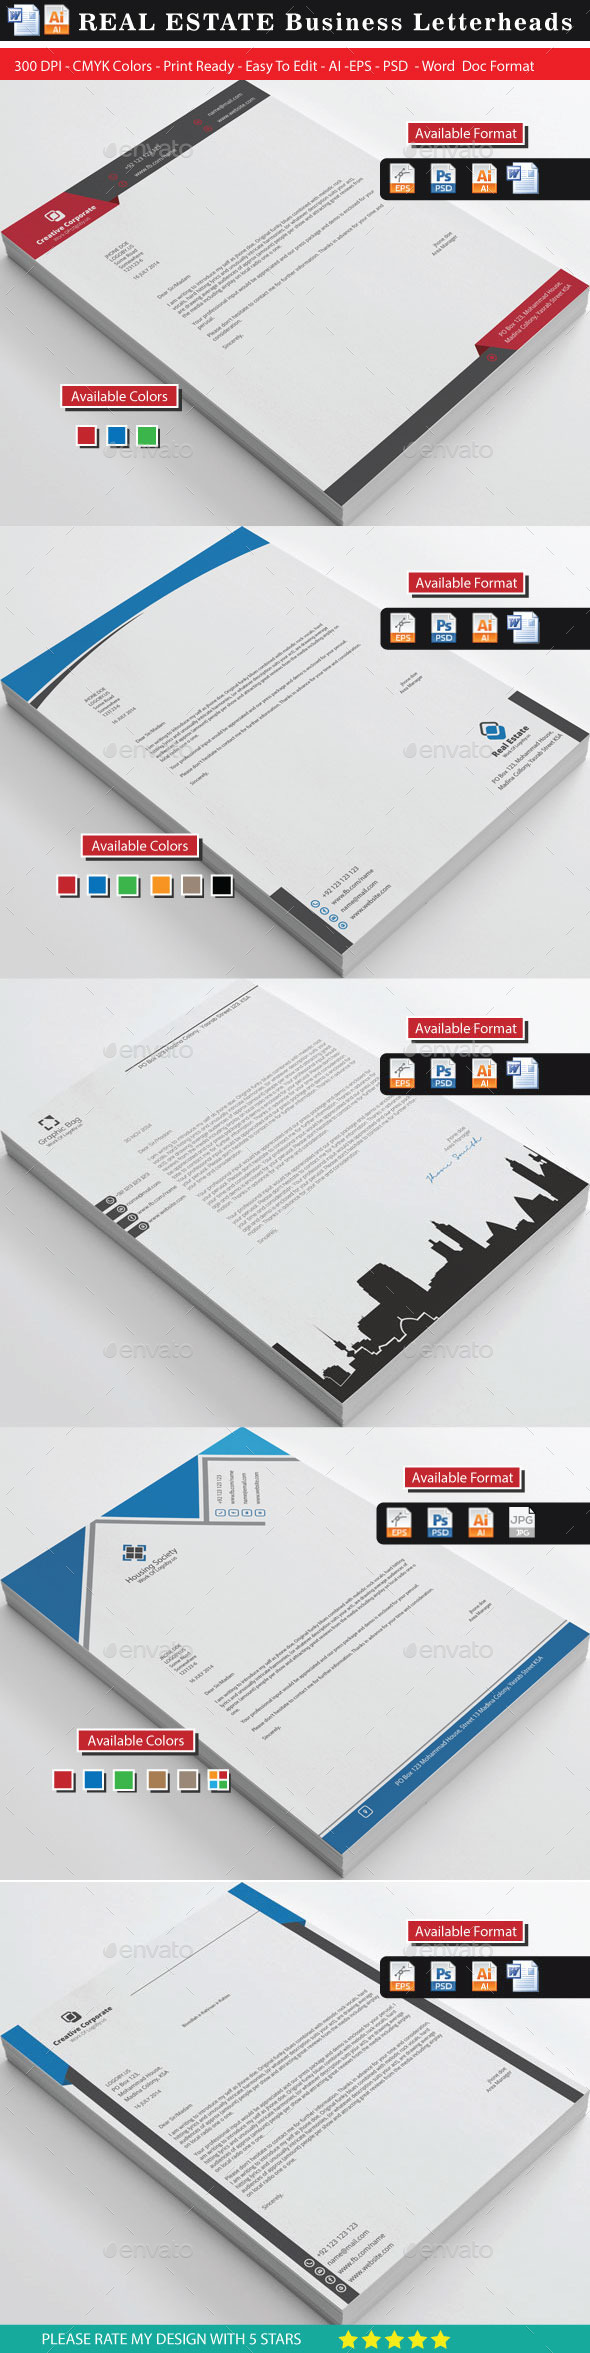 Real Estate Letterheads Bundle - Stationery Print Templates